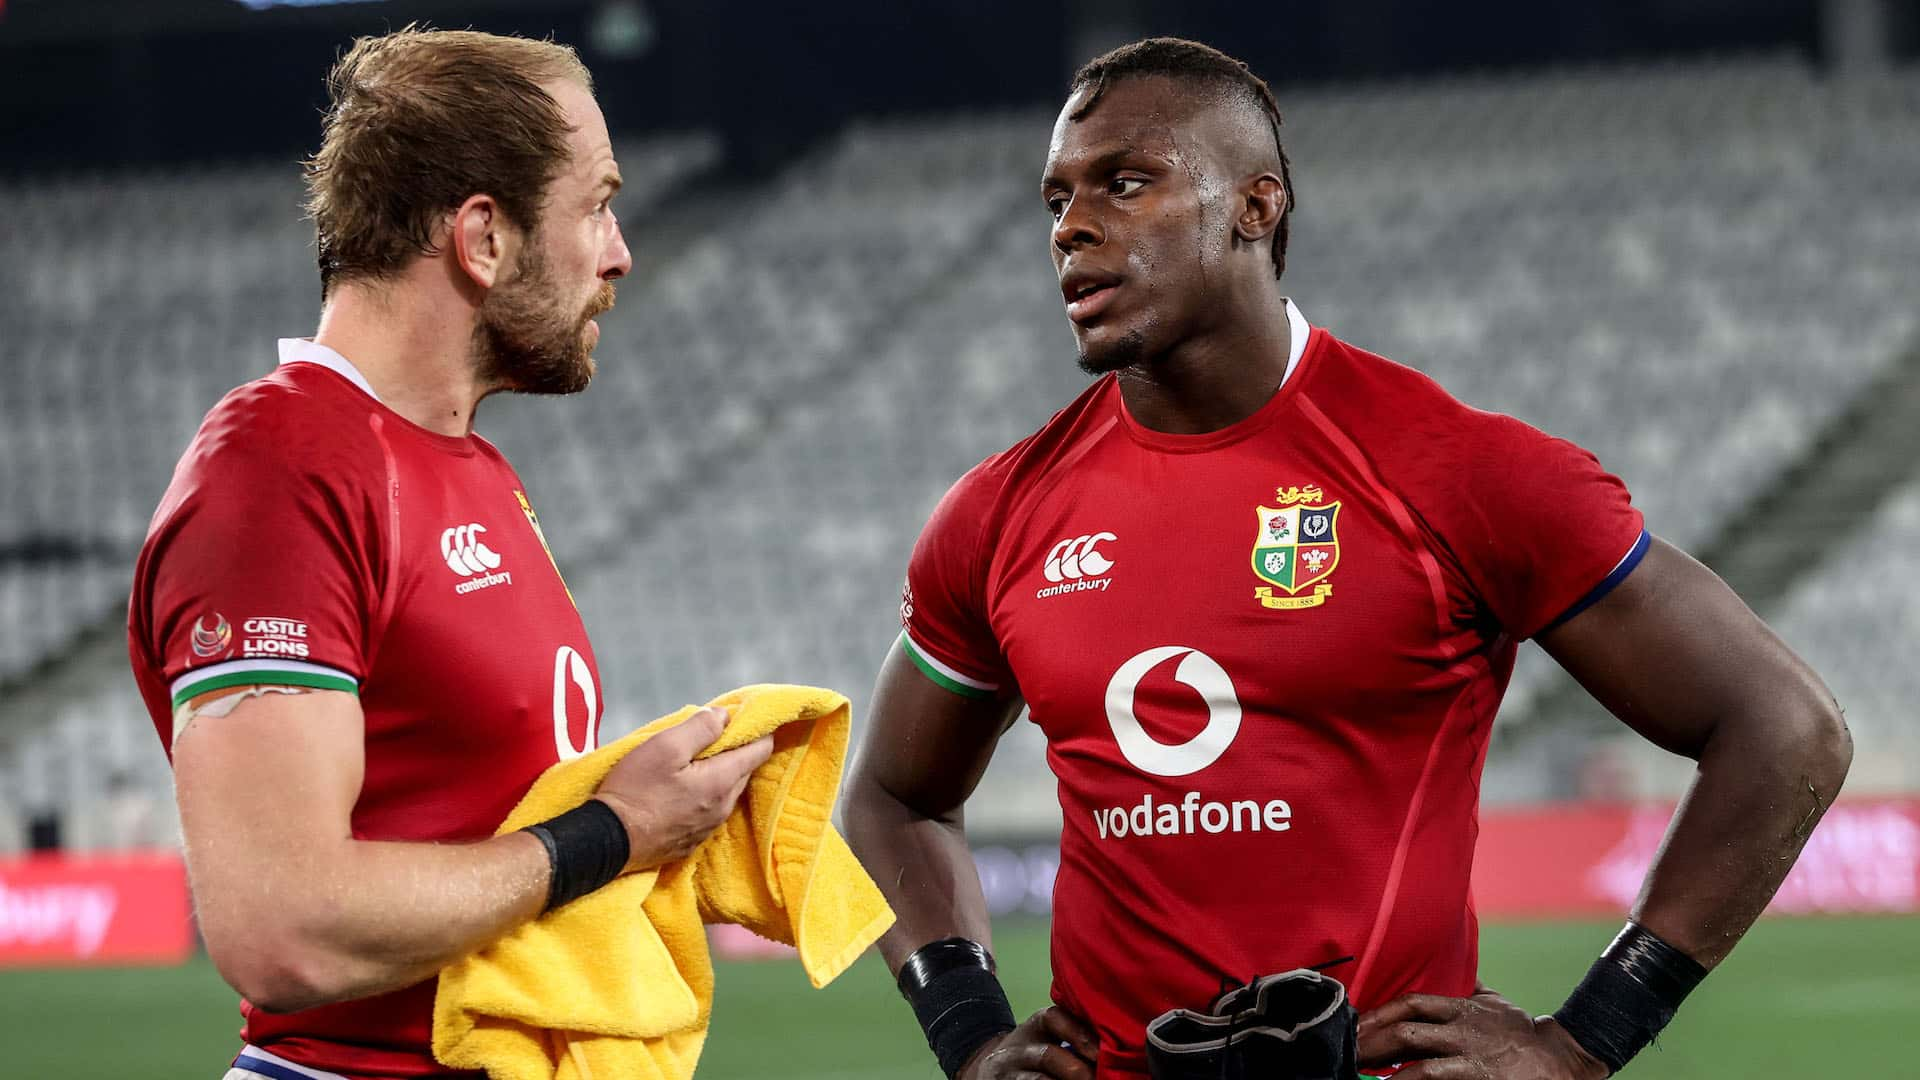 Alun Wyn Jones after the game with Maro Itoje